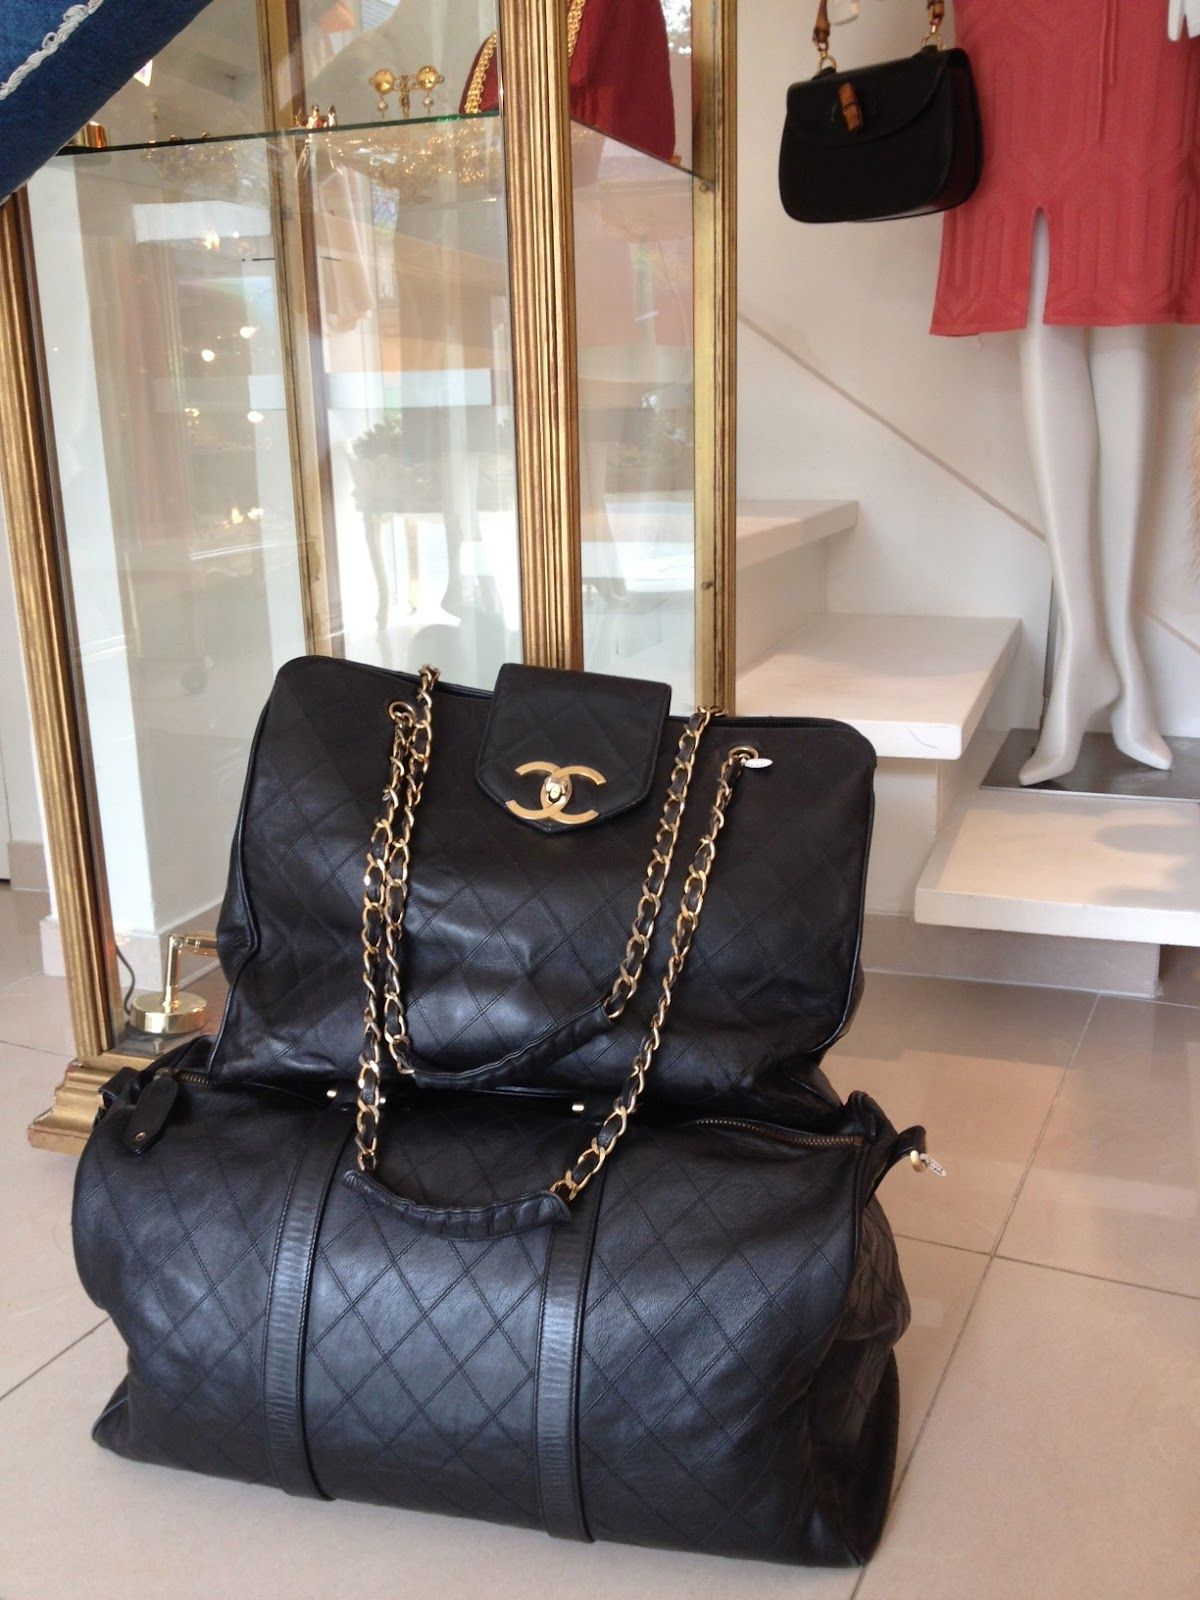 570abc207c90 Vintage Chanel Supermodel Tote & Boston Duffle Bag | Vintage Paris ...